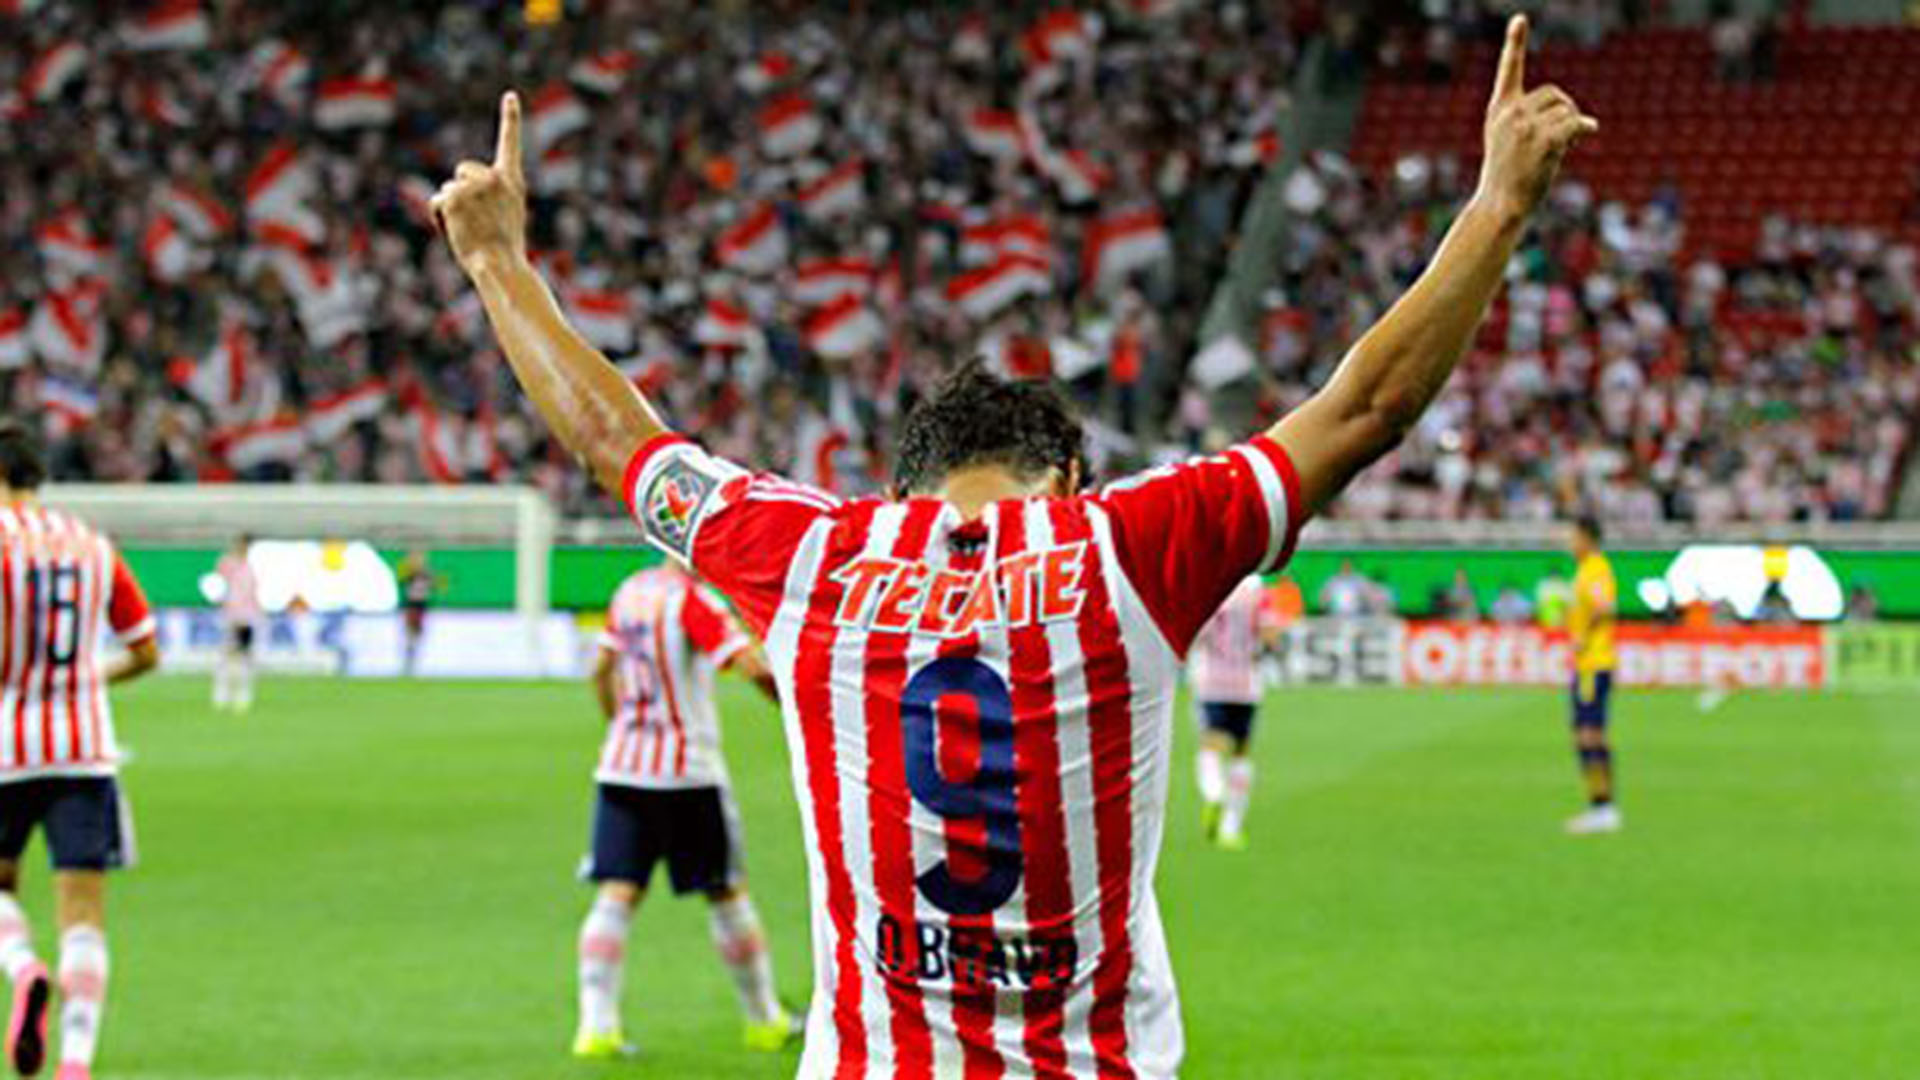 Chivas soccer team wallpaper compartir chivas pinterest chivas soccer team wallpaper chivas soccer team wallpaper voltagebd